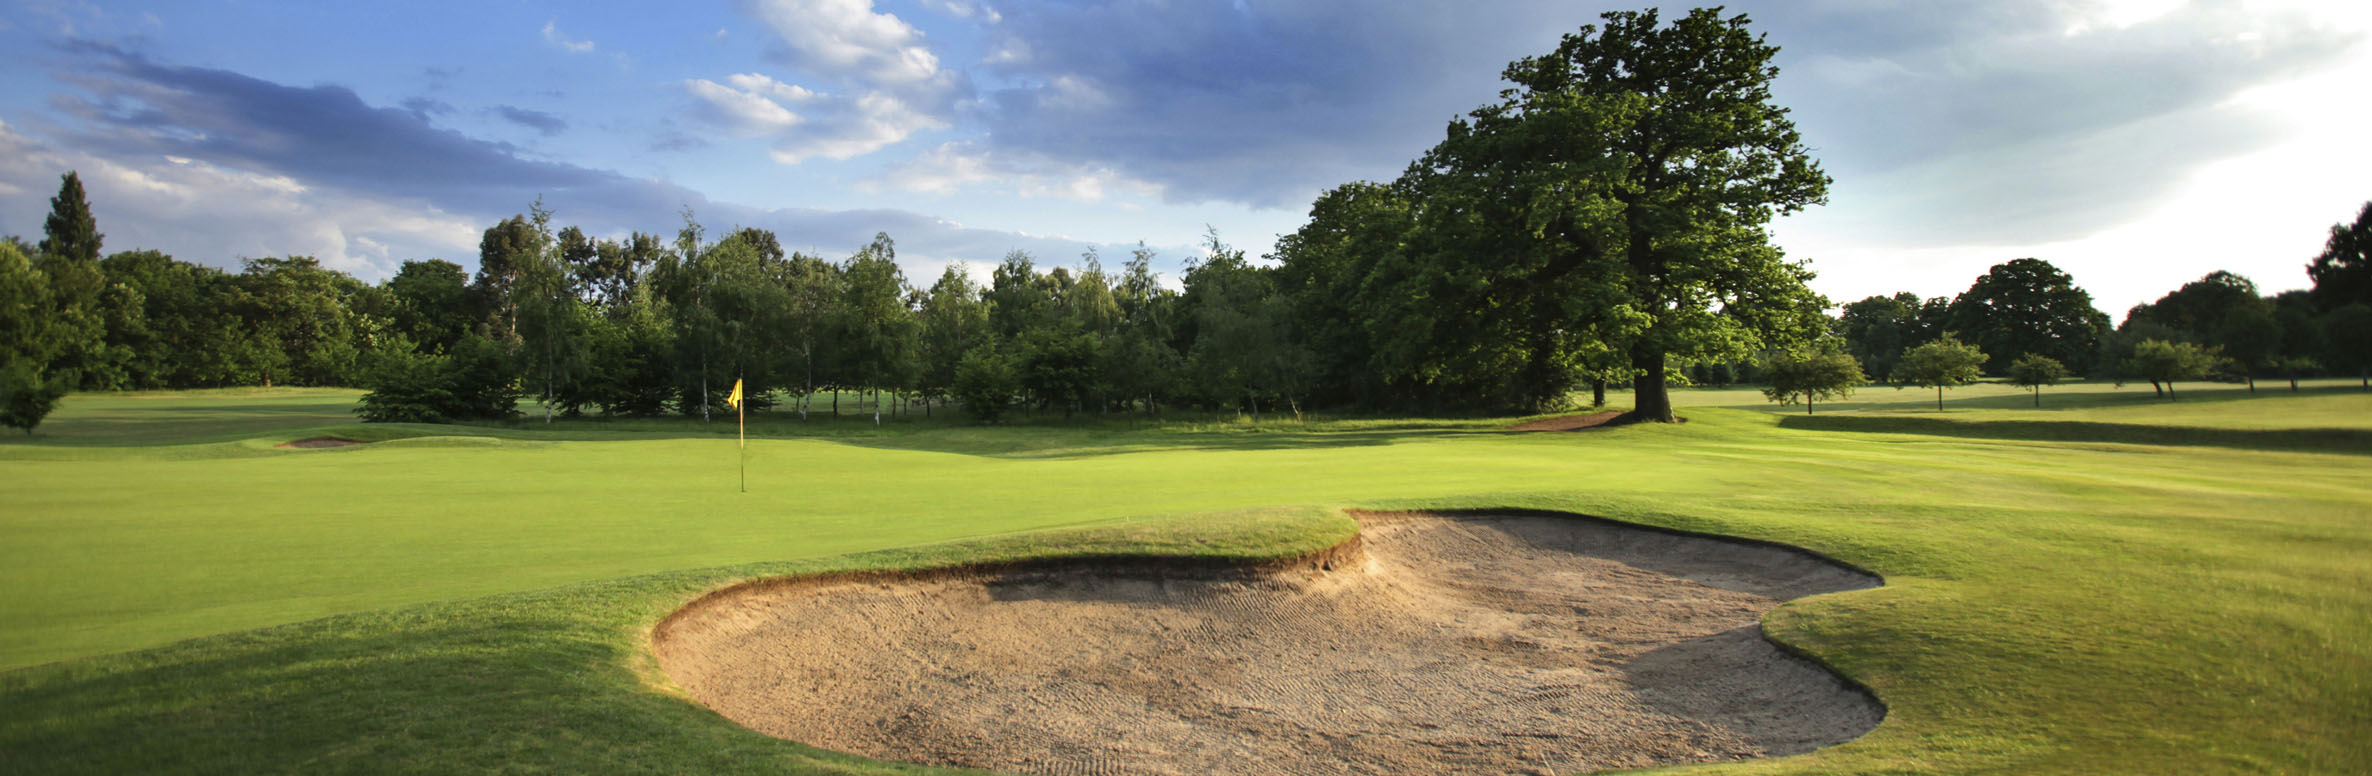 Golf Course Image - The Fulwell Golf Club No. 5